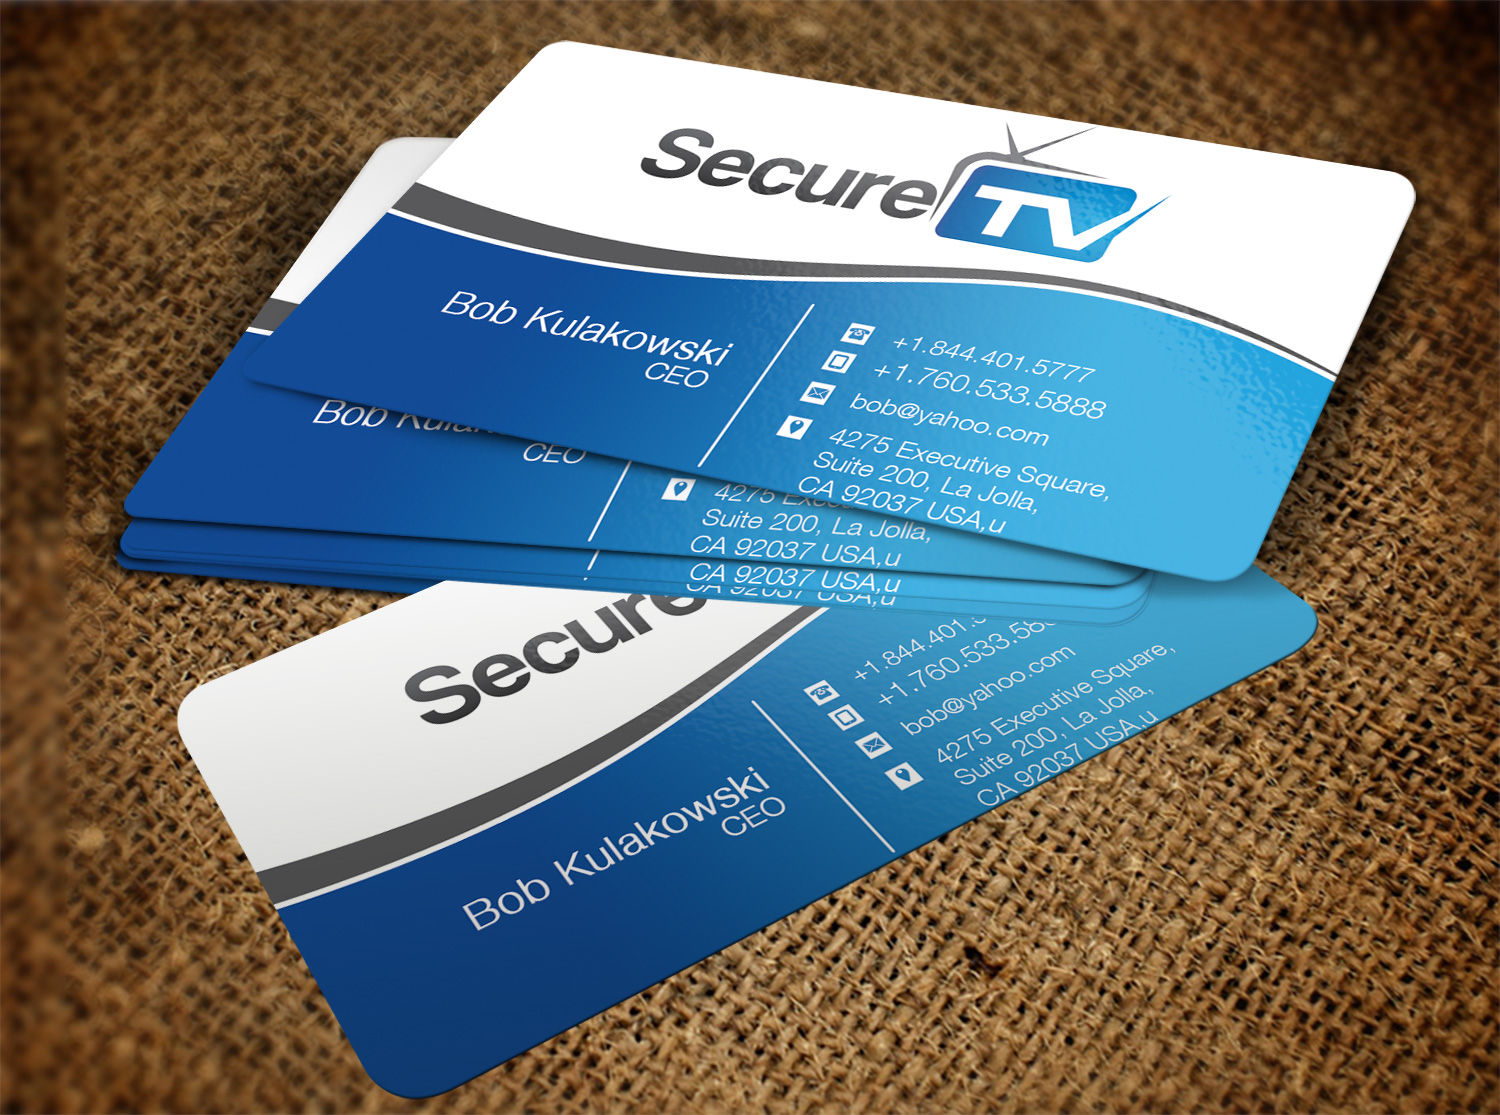 Professional serious cable tv business card design for secure tv business card design by pawana designs for secure tv design 12323750 reheart Image collections